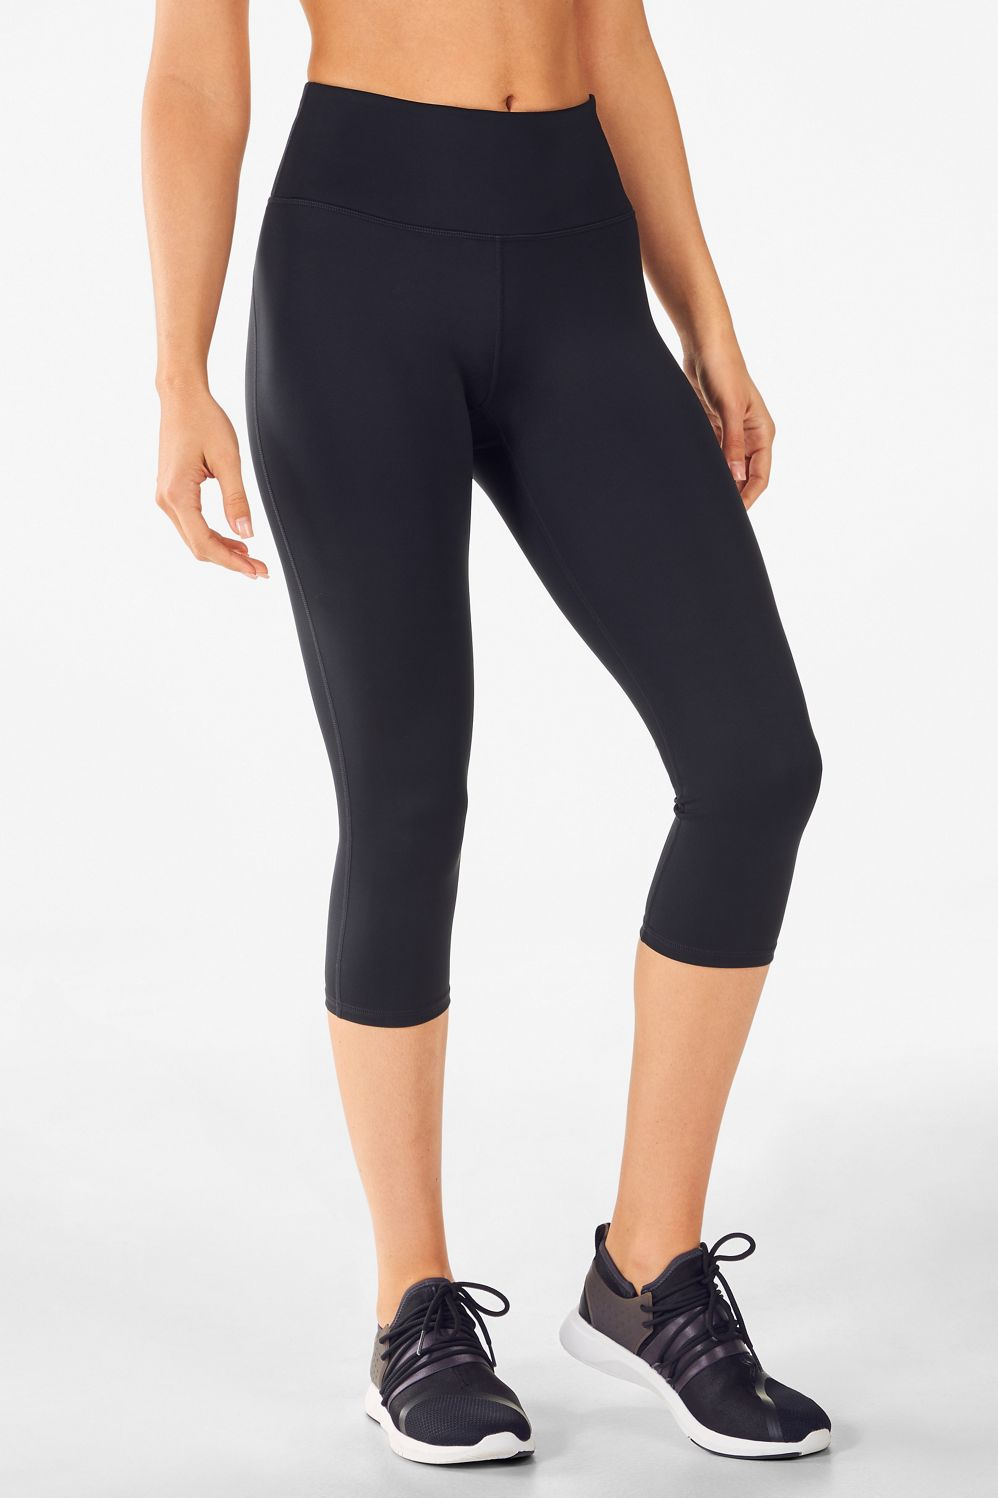 0b9f9d0655a High-Waisted Solid UltraCool Crop - Fabletics